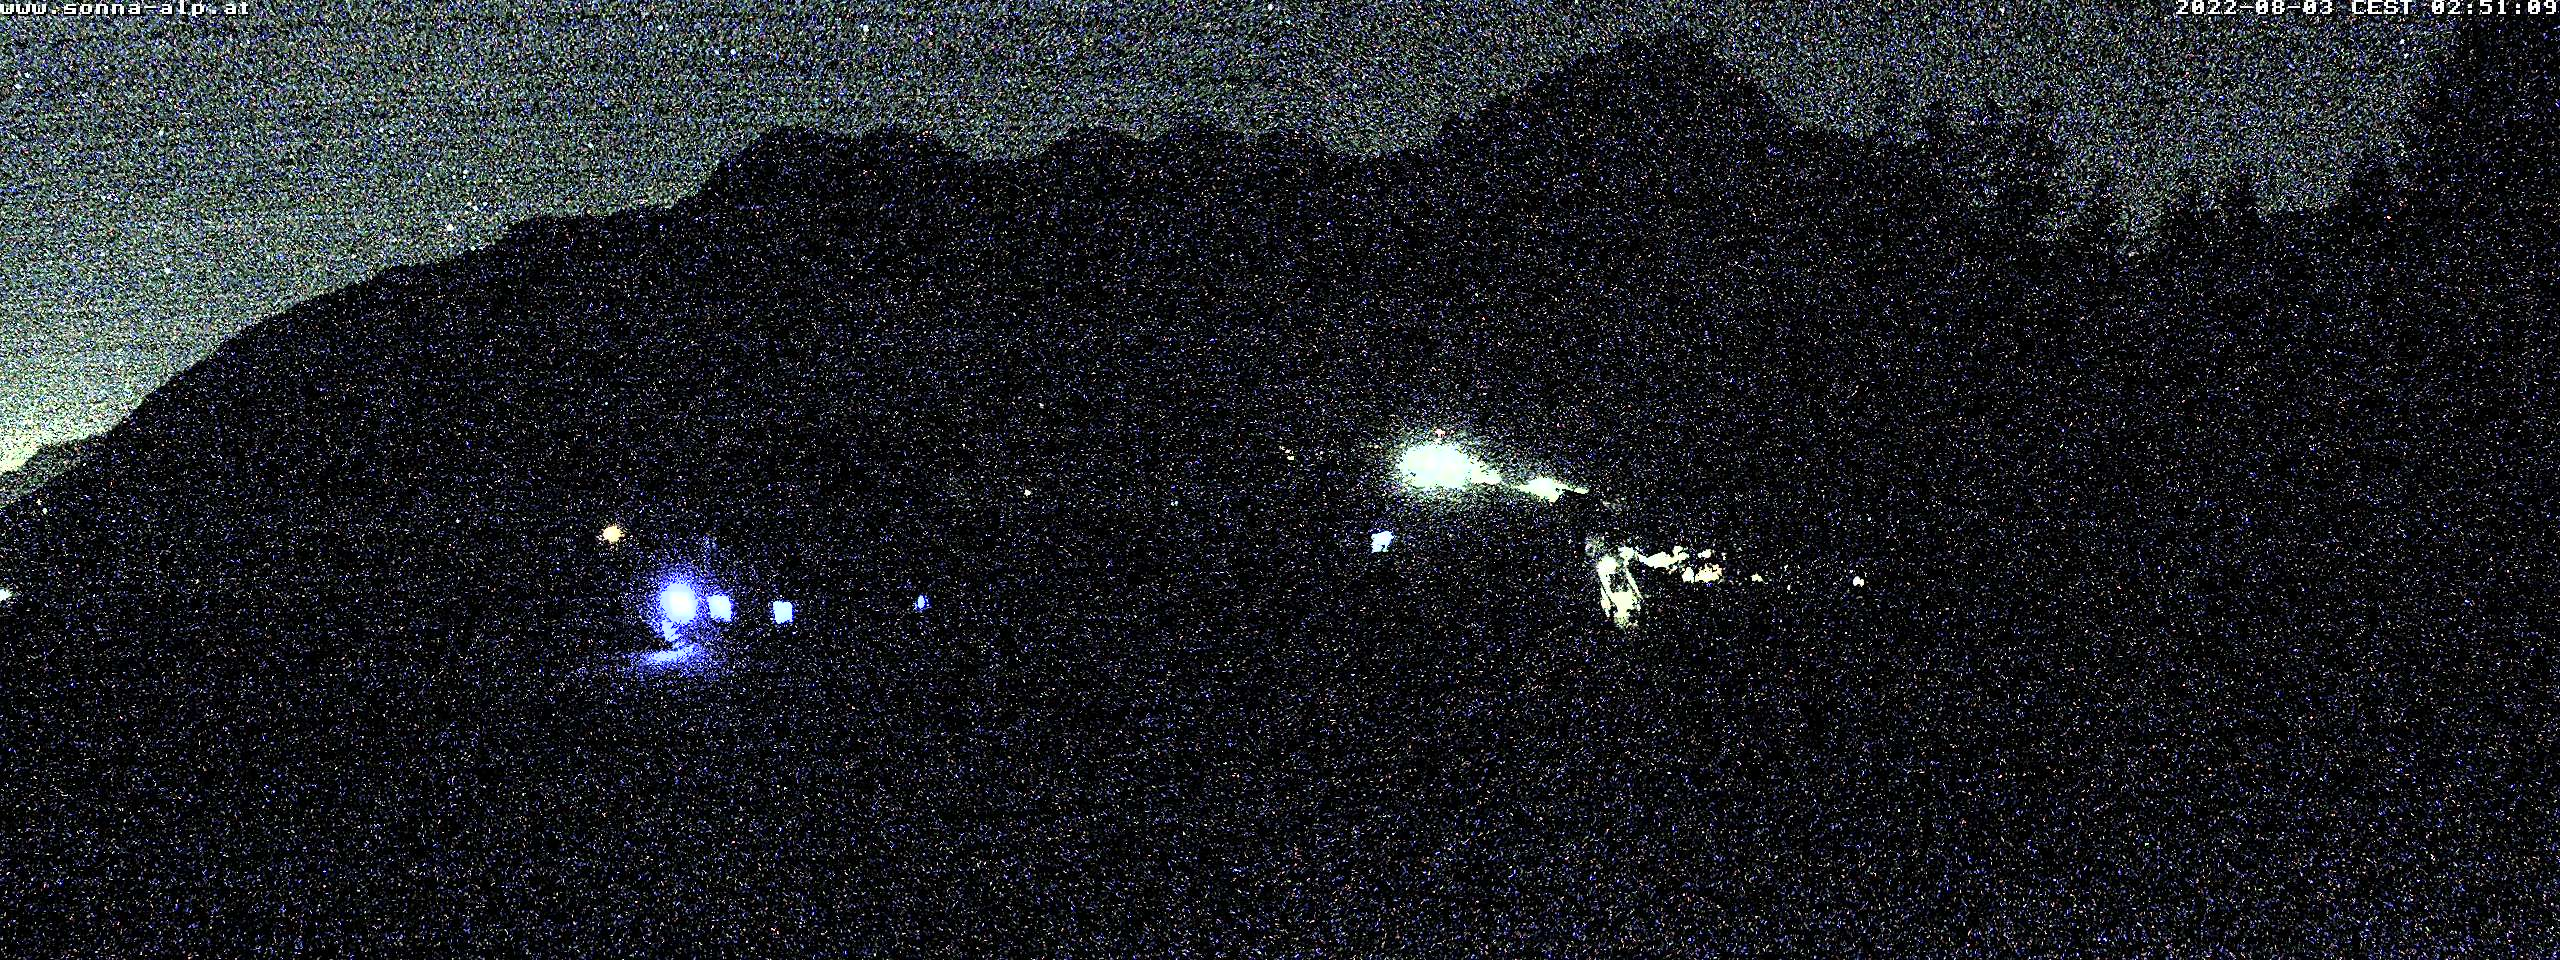 Webcam-Bild: Webcam - Zafernalift Bergstation